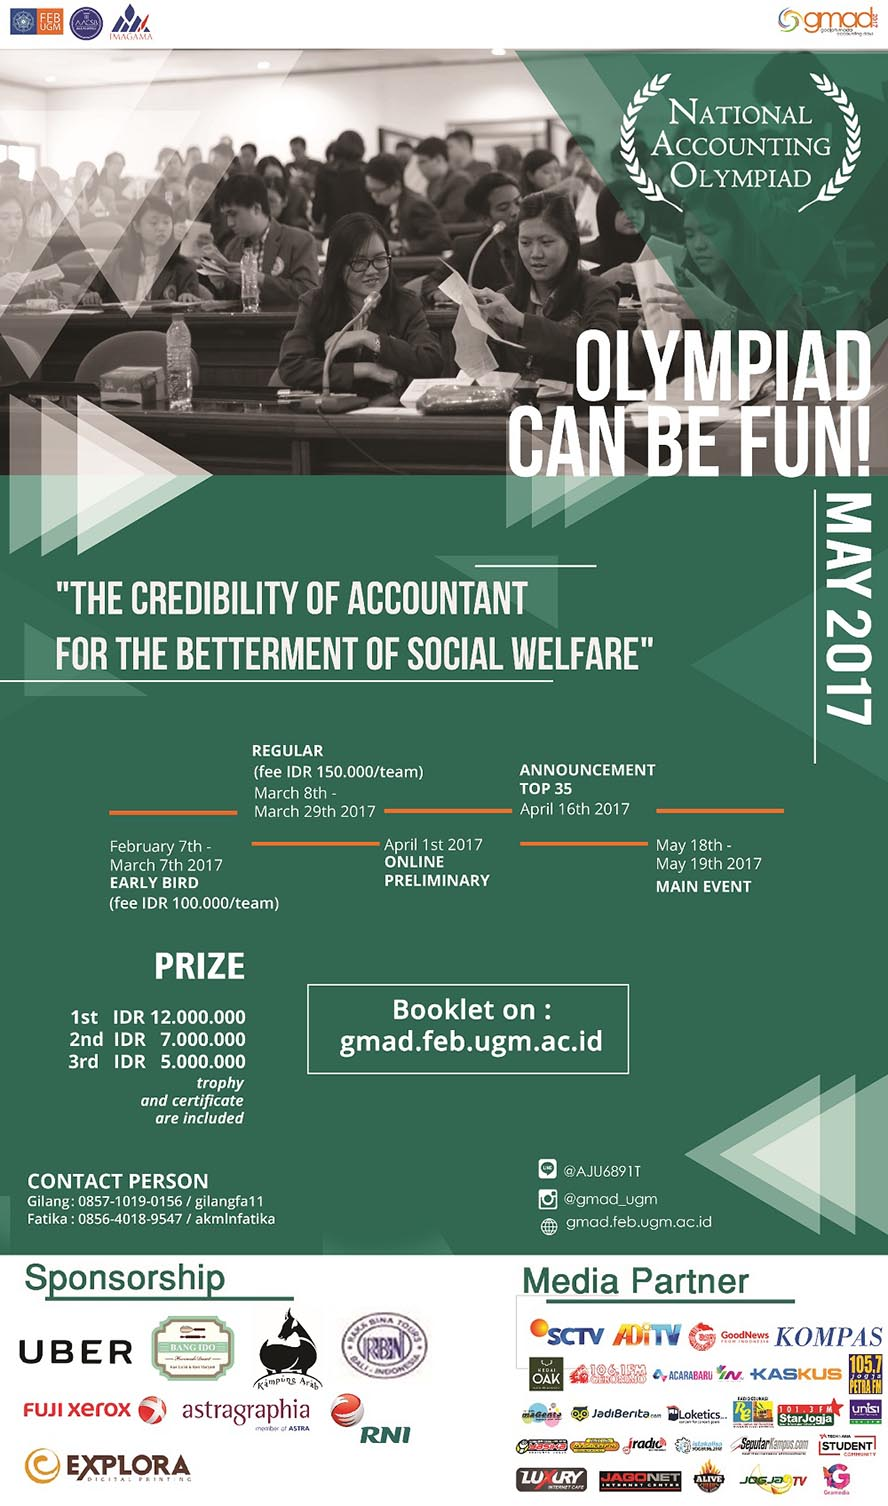 Gadjah Mada Accounting Days : National Accounting Olympiad, 18 - 19 Mei 2017